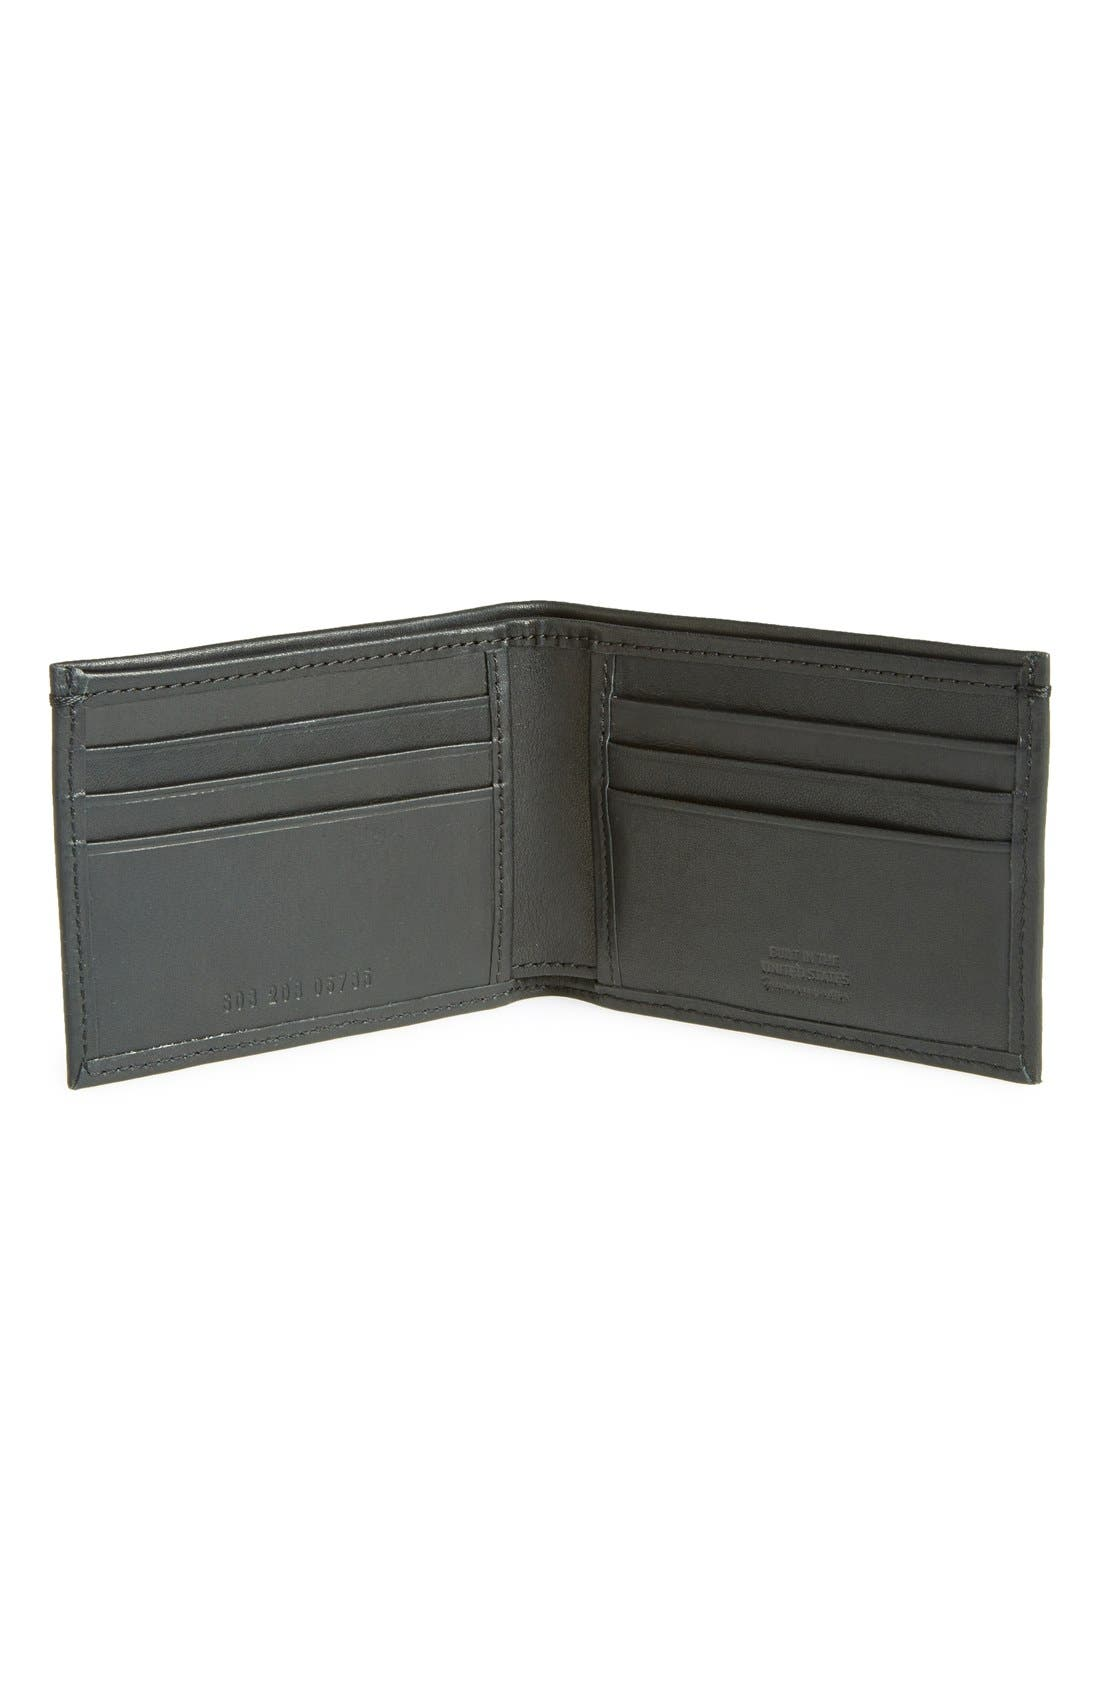 SHINOLA, Slim Bifold Leather Wallet, Alternate thumbnail 3, color, BLACK